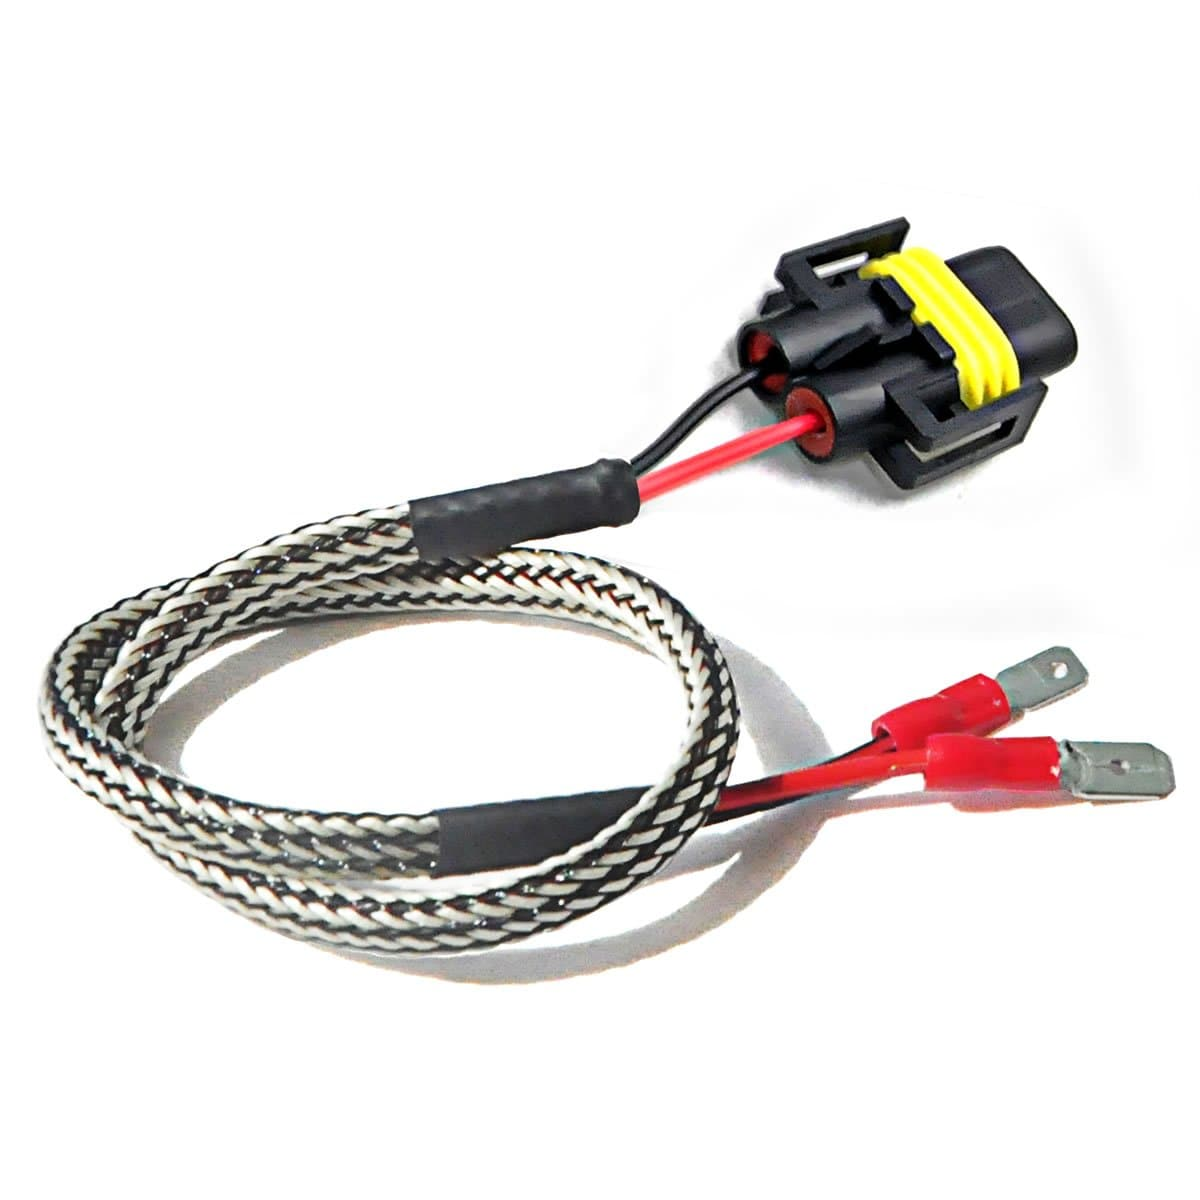 H11B H11 LED Headlight Plug Extension Cable Wiring Harness for Hyundai H Headlight Plug Wiring Diagram on